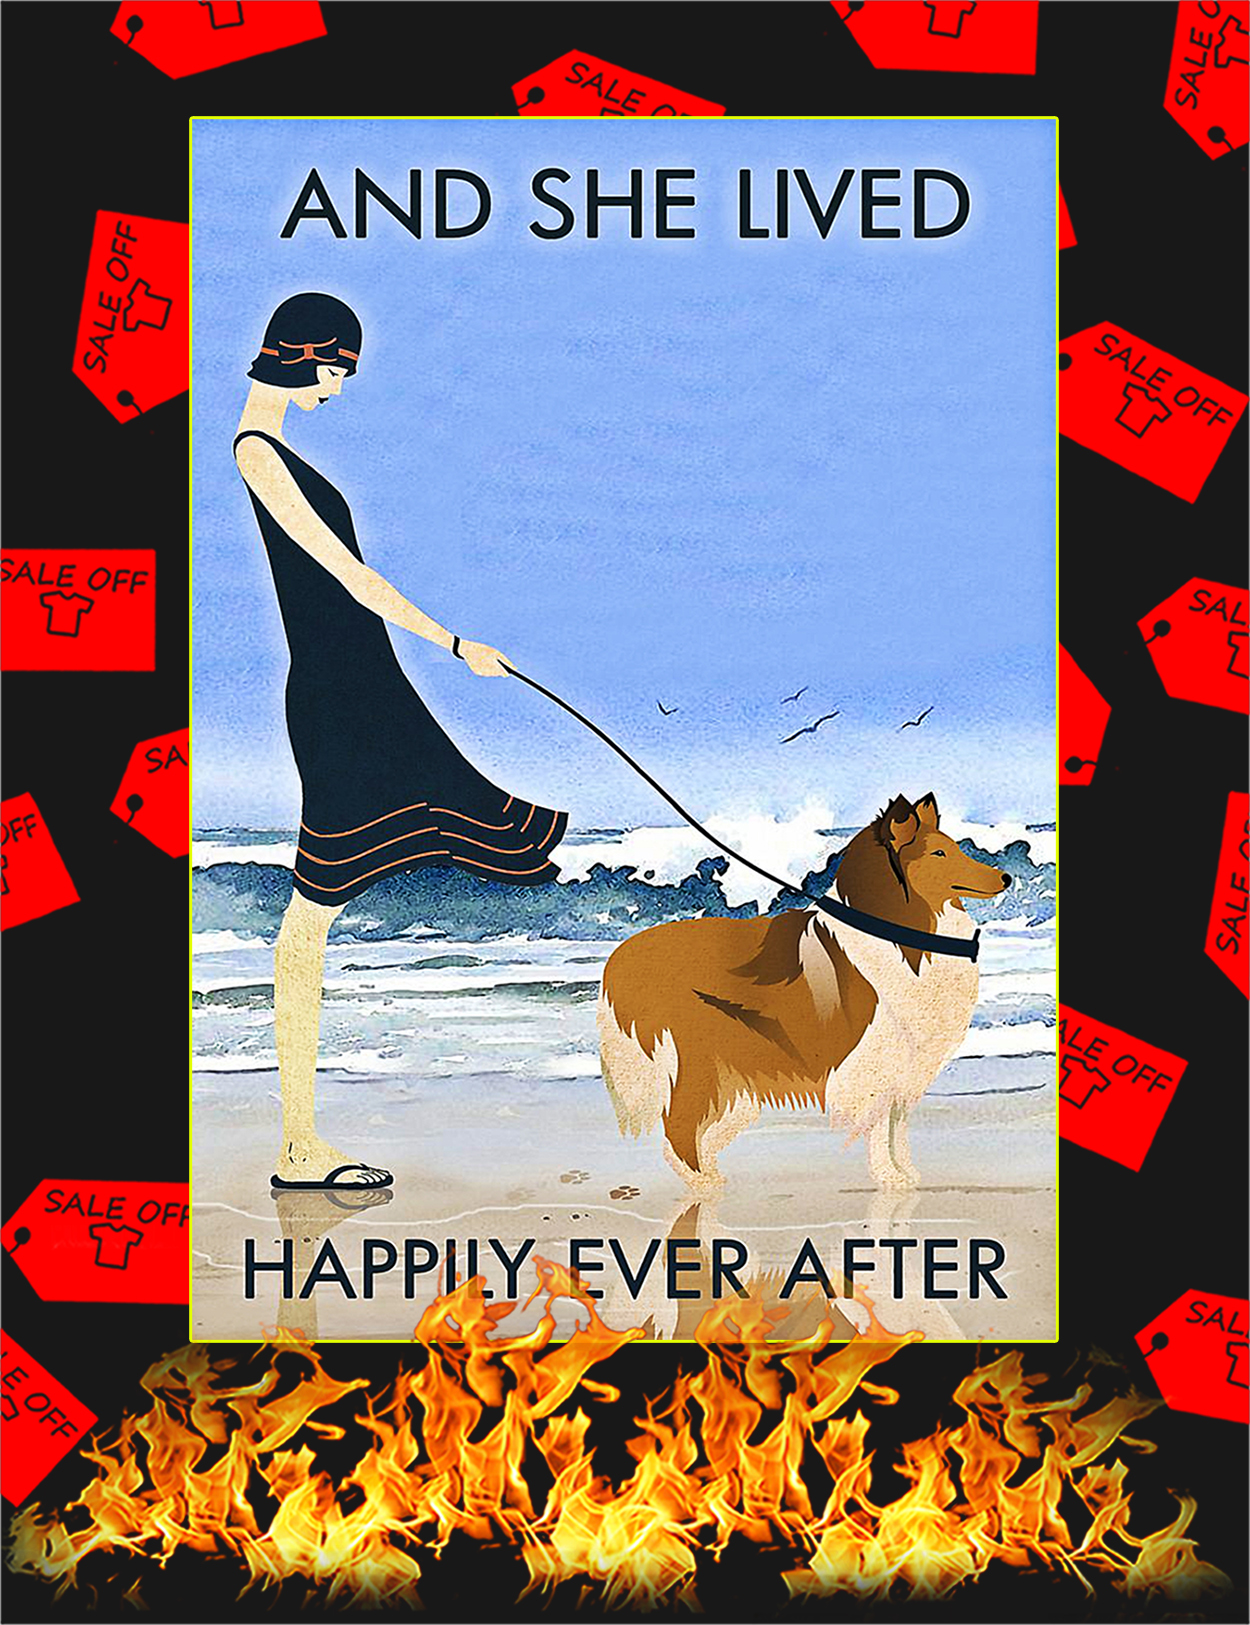 Beach and collie dog and she lived happily ever after poster - A3